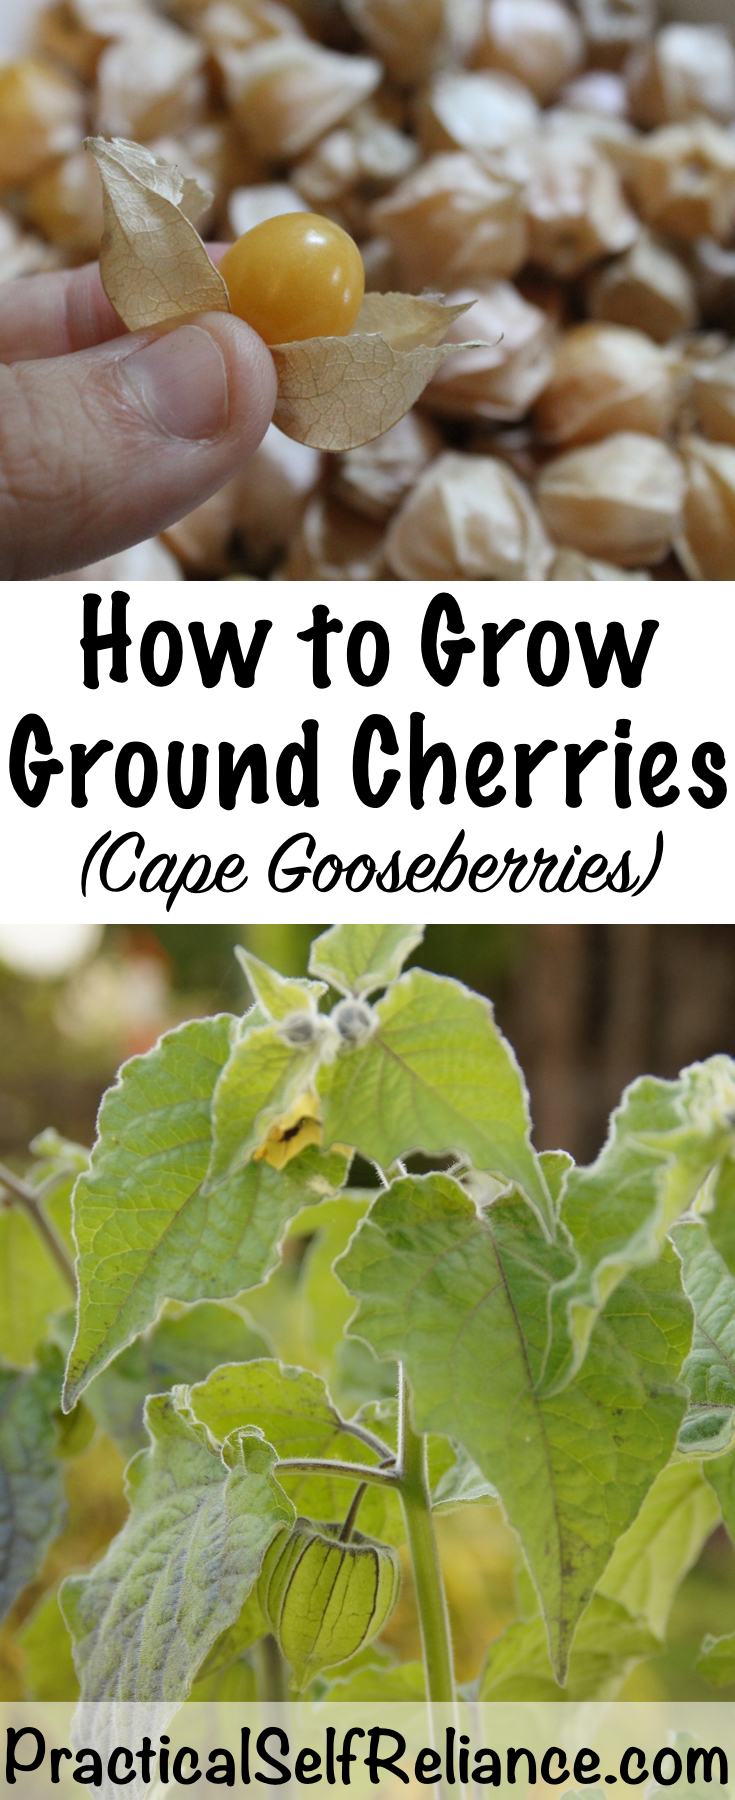 How to Grow Ground Cherries ~ Cape Gooseberries ~ Husk Cherries ~ Physalis sp. #groundcherries #groundcherry #gardening #organicgardening #foodgardening #howtogrow #vegetablegardening #gardeningtips #homesteading #homestead #selfreliant